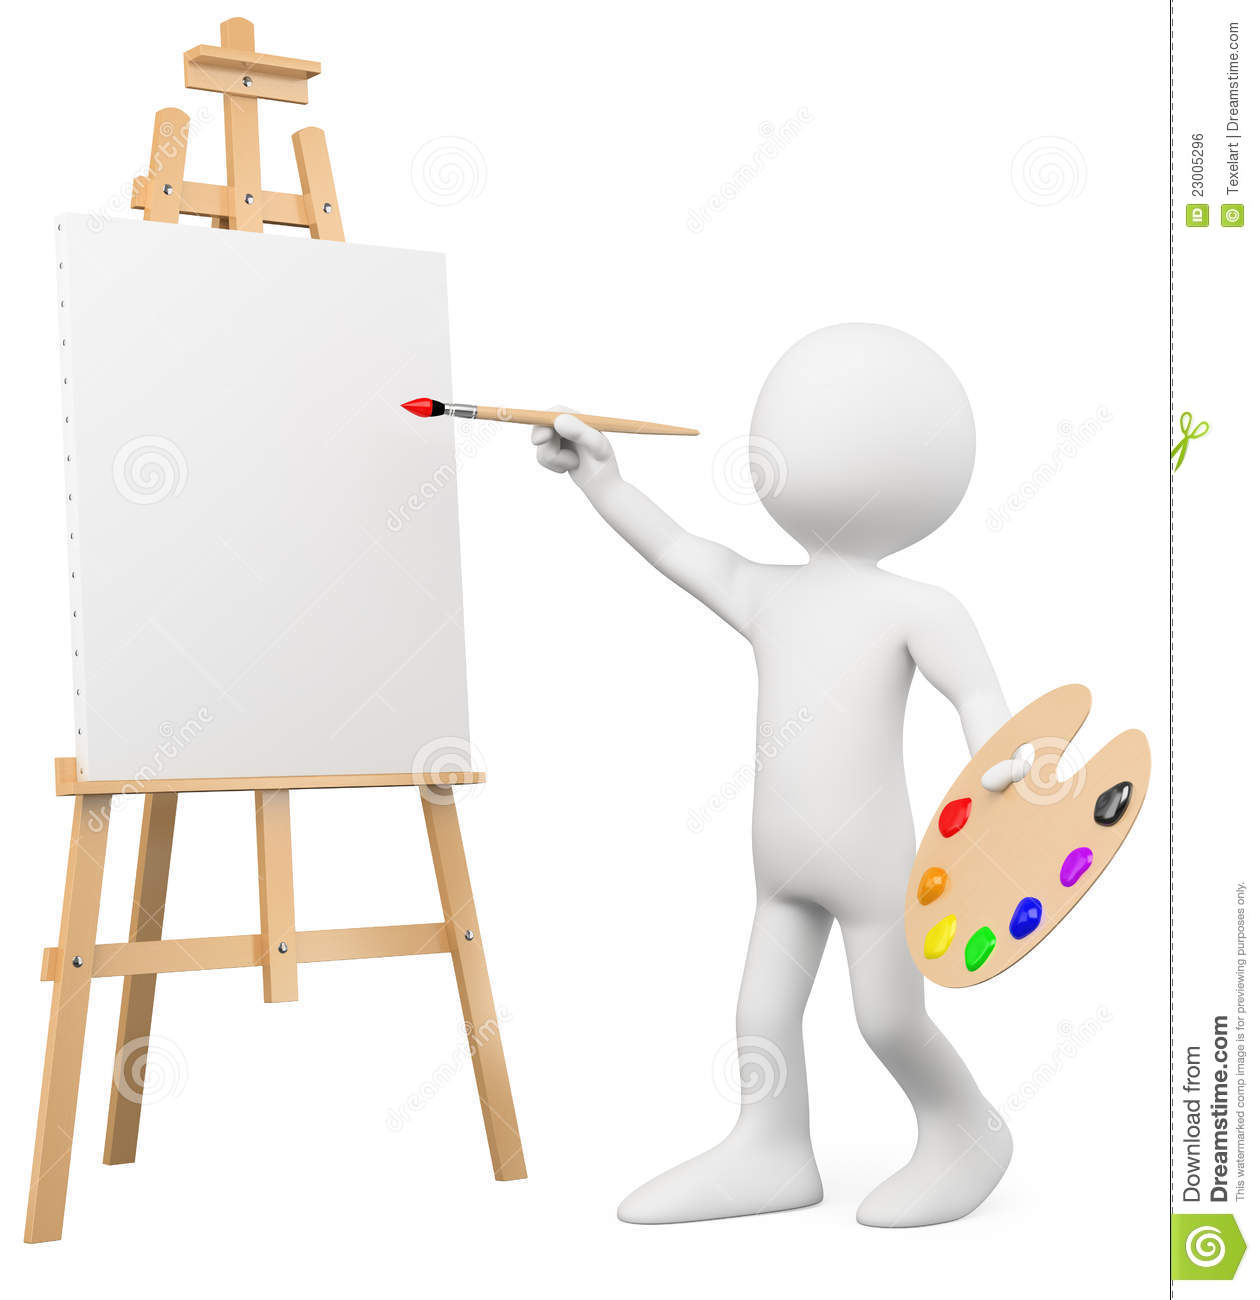 Art Easel Gallery Clipart - Clipart Kid